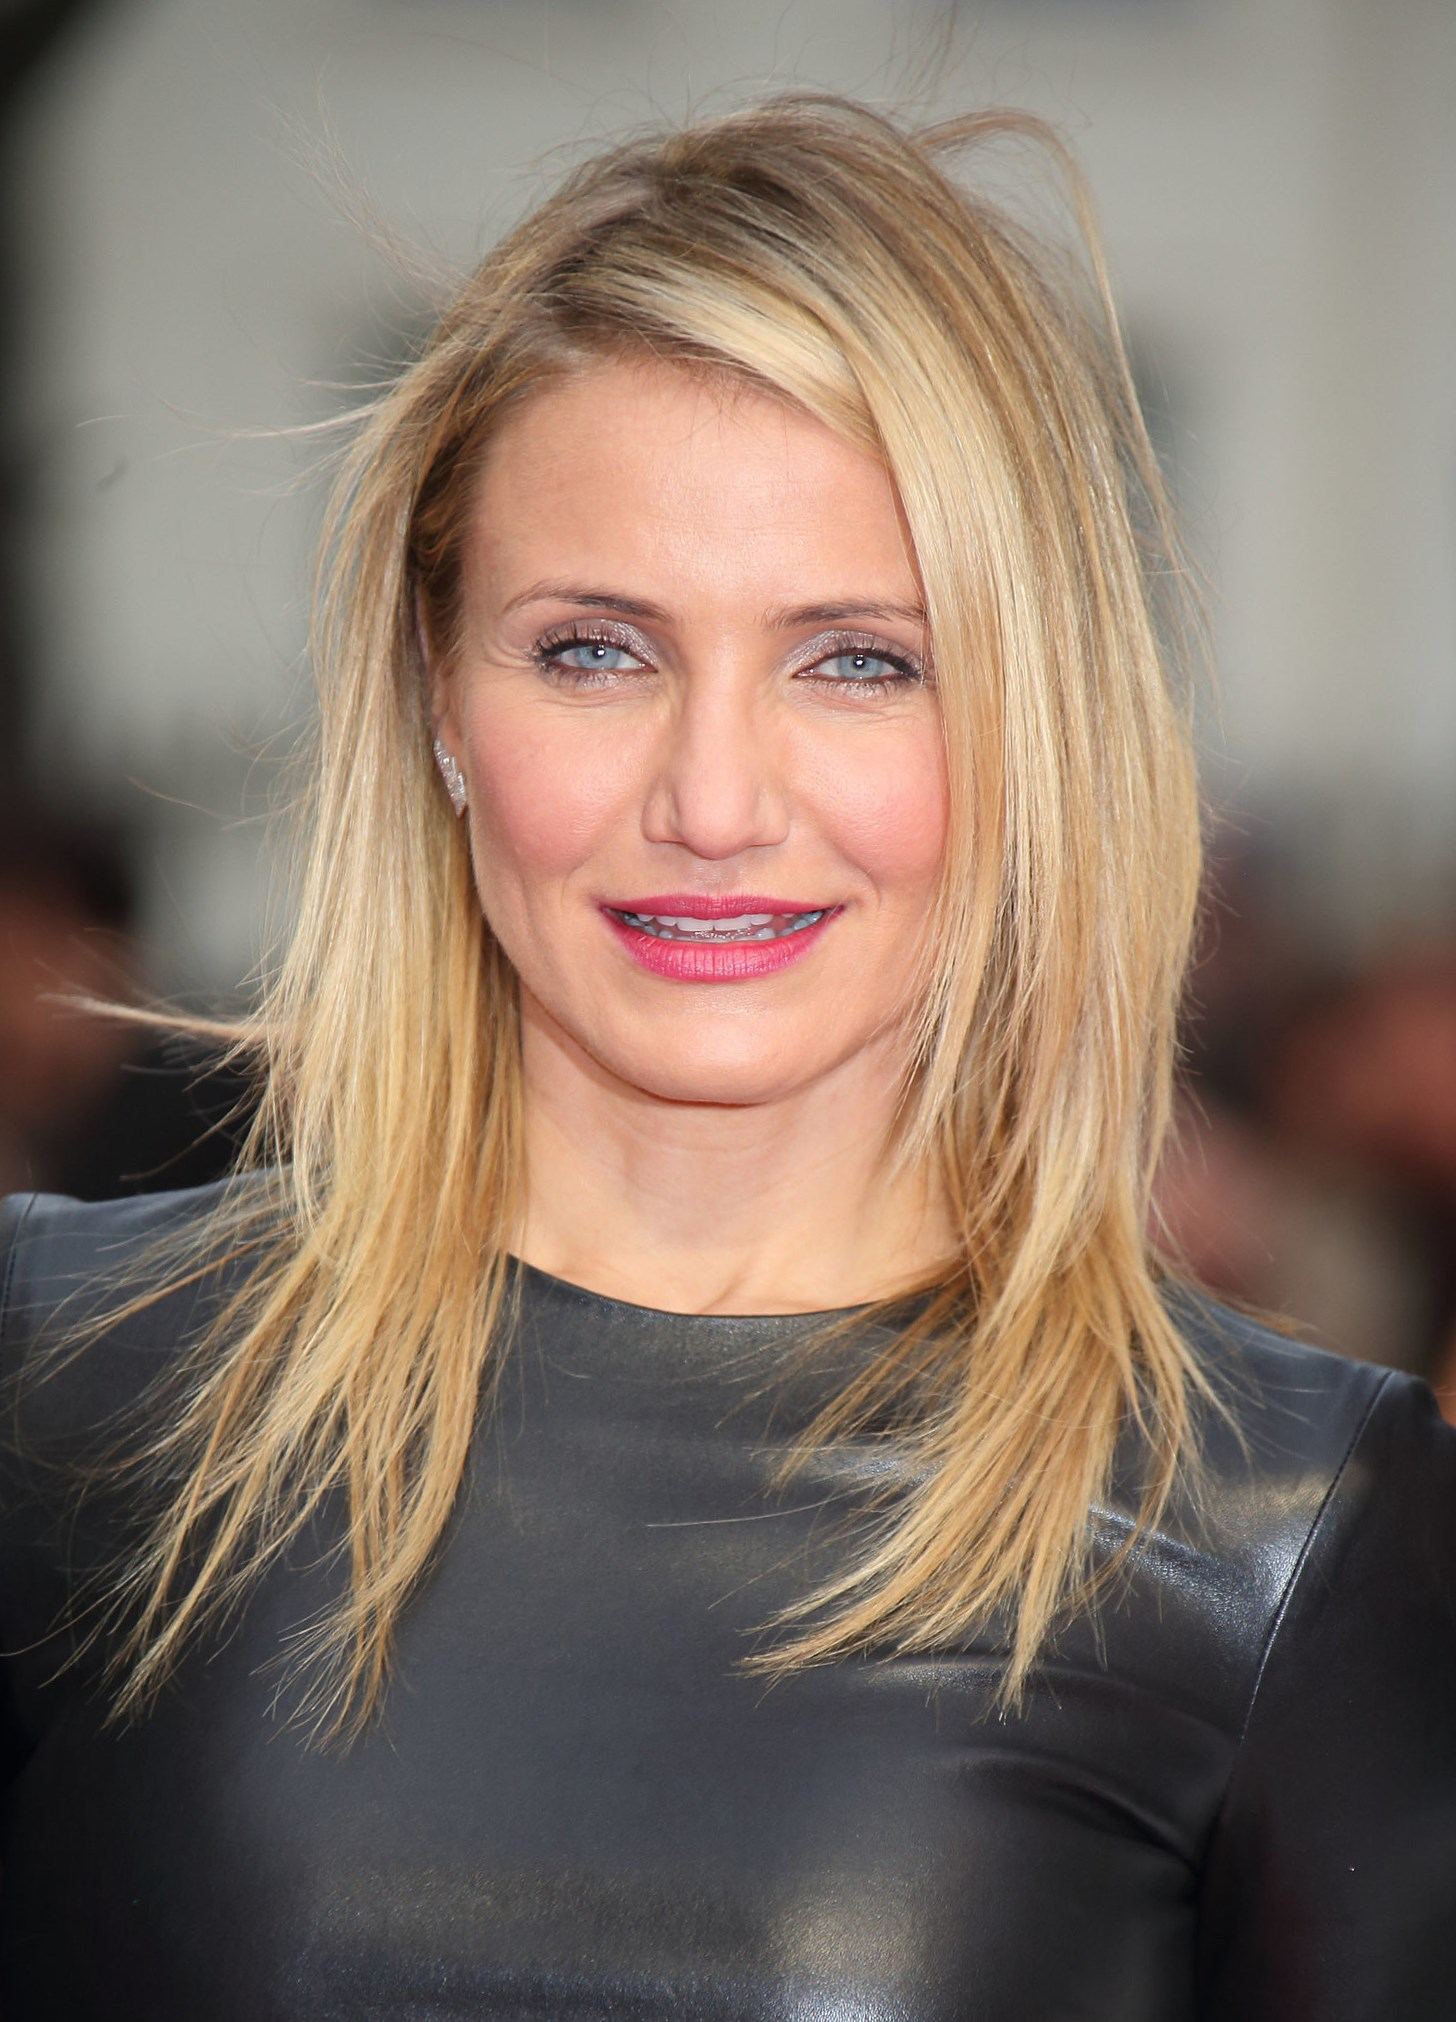 Cameron Diaz Net Worth - Salary, House, CarCameron Diaz Net Worth